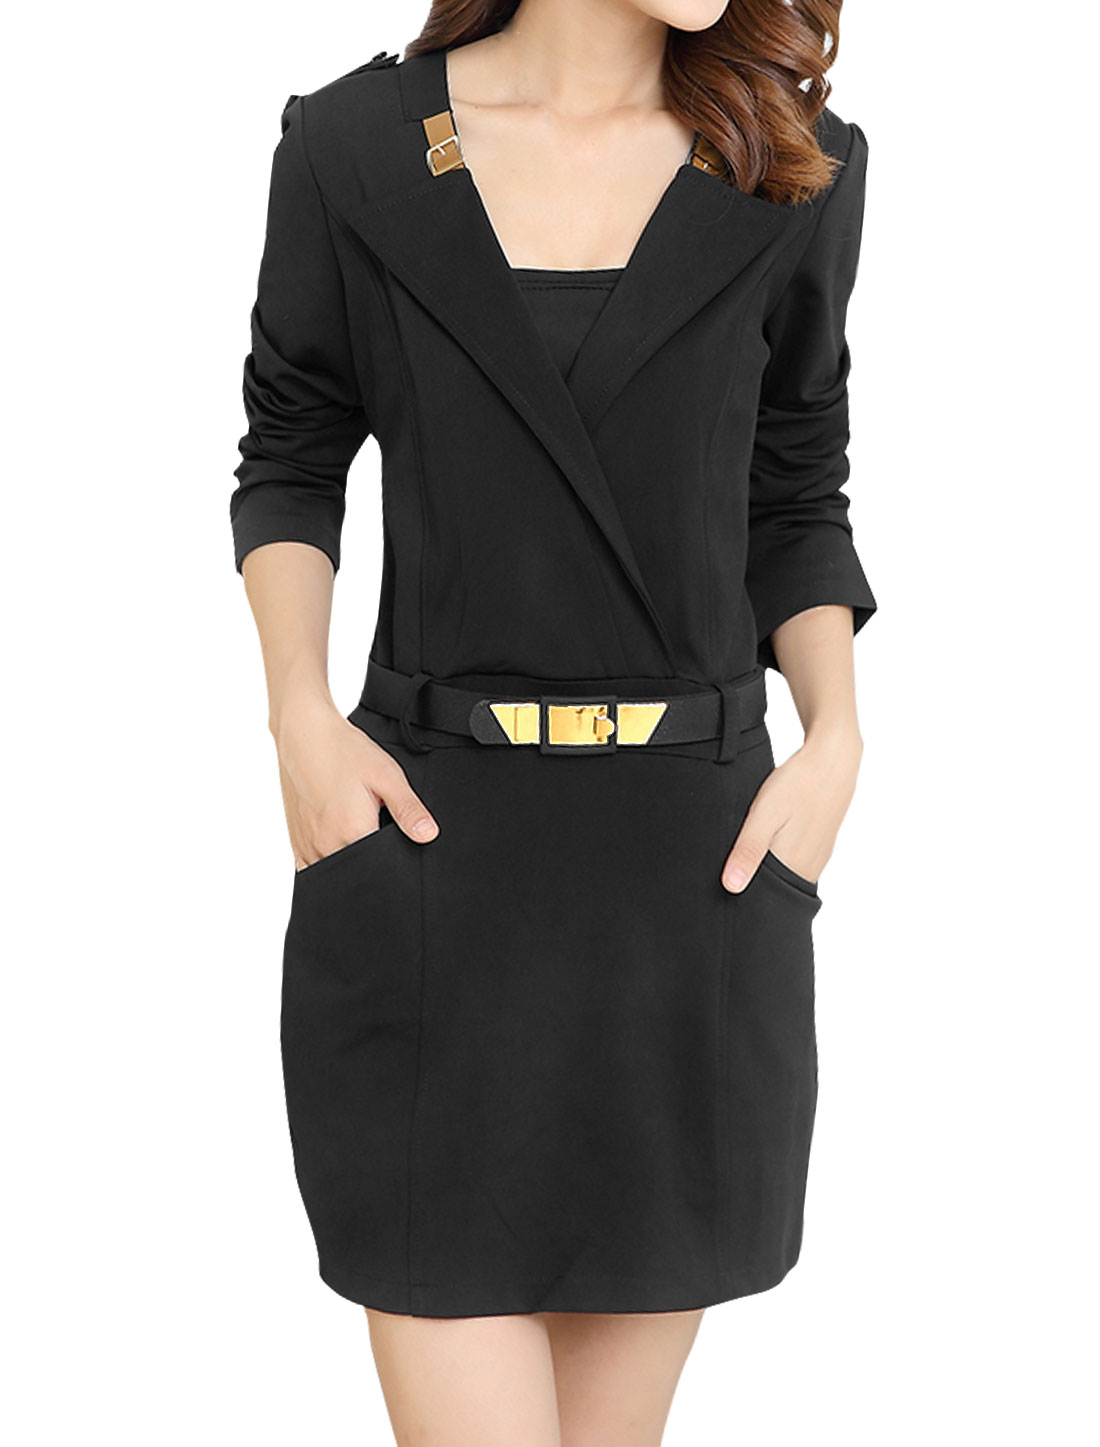 Women Turn Down Collar Wrap Design Waist Belt Sheath Dress Black M